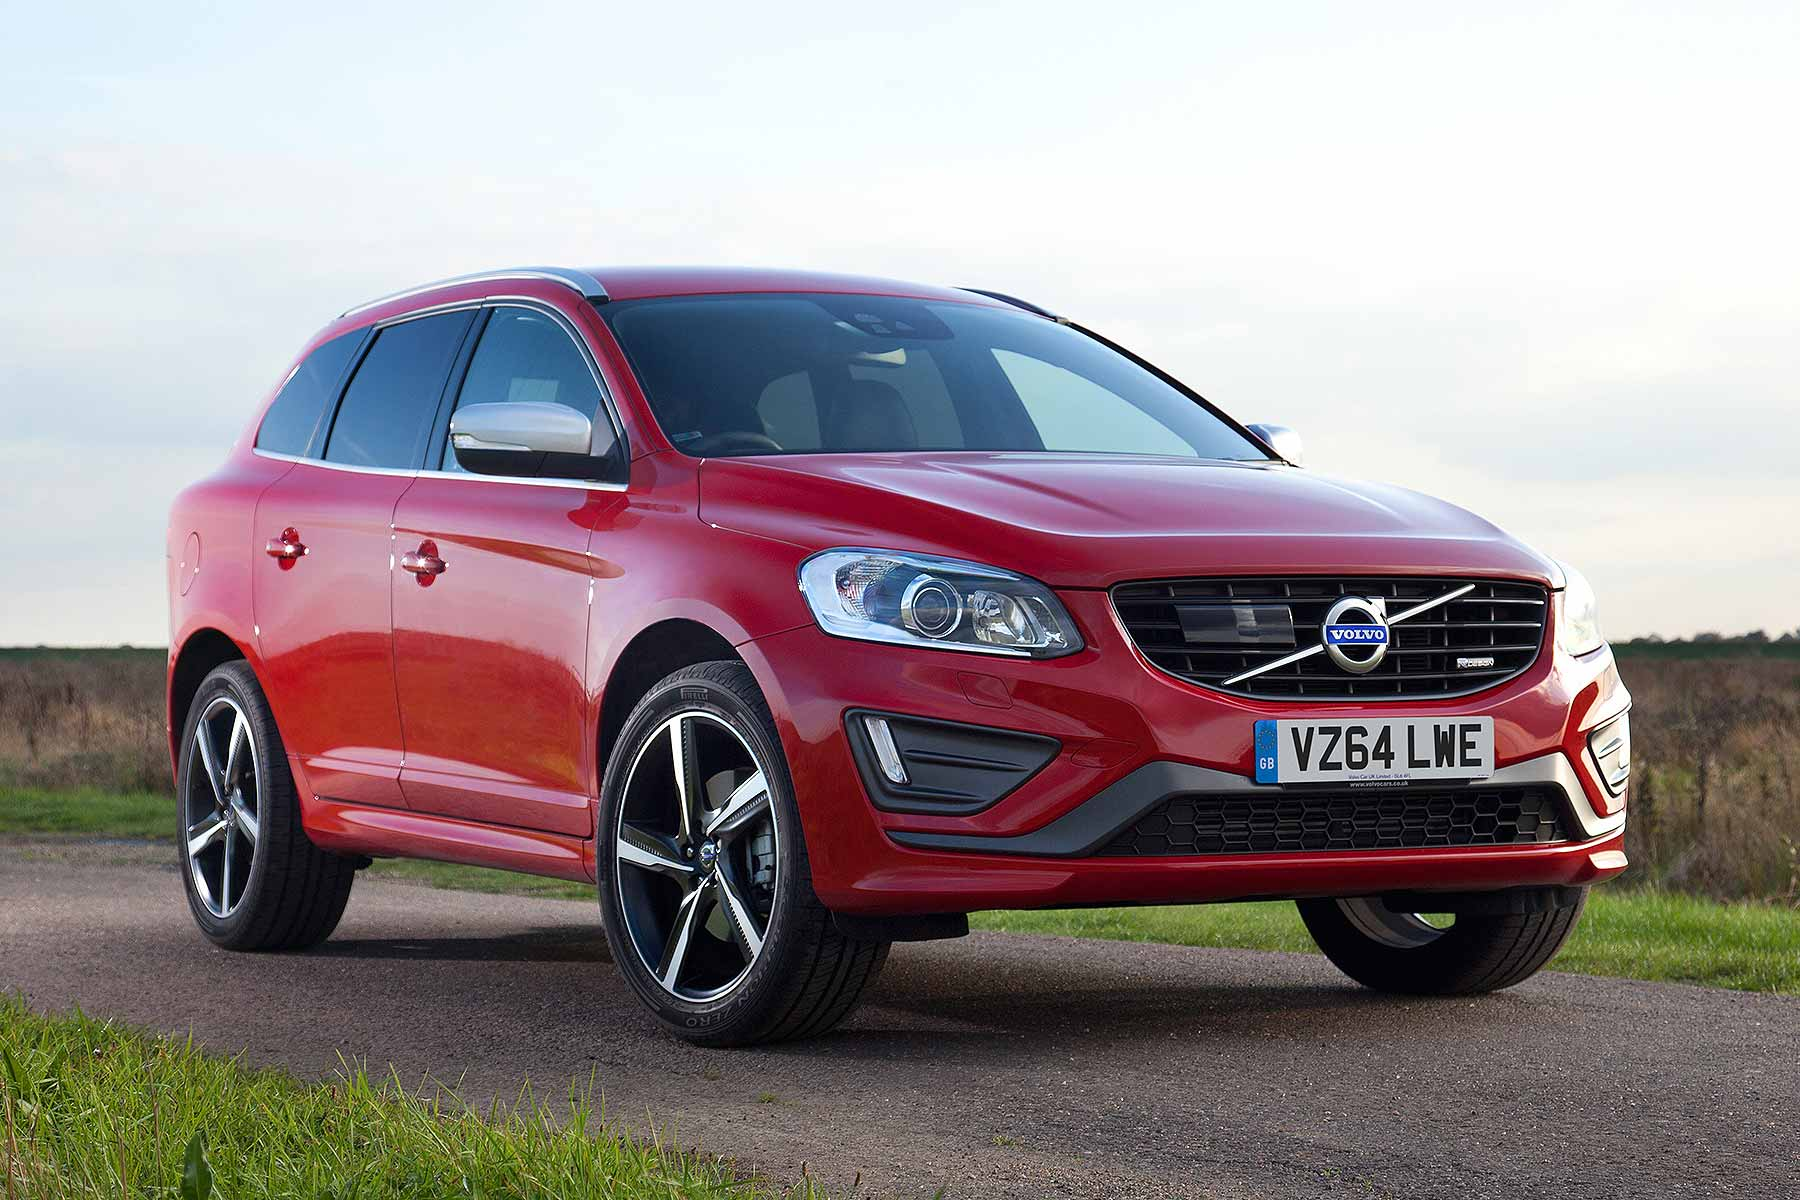 volvo xc60 d4 se lux nav geartronic review 2015 road test. Black Bedroom Furniture Sets. Home Design Ideas